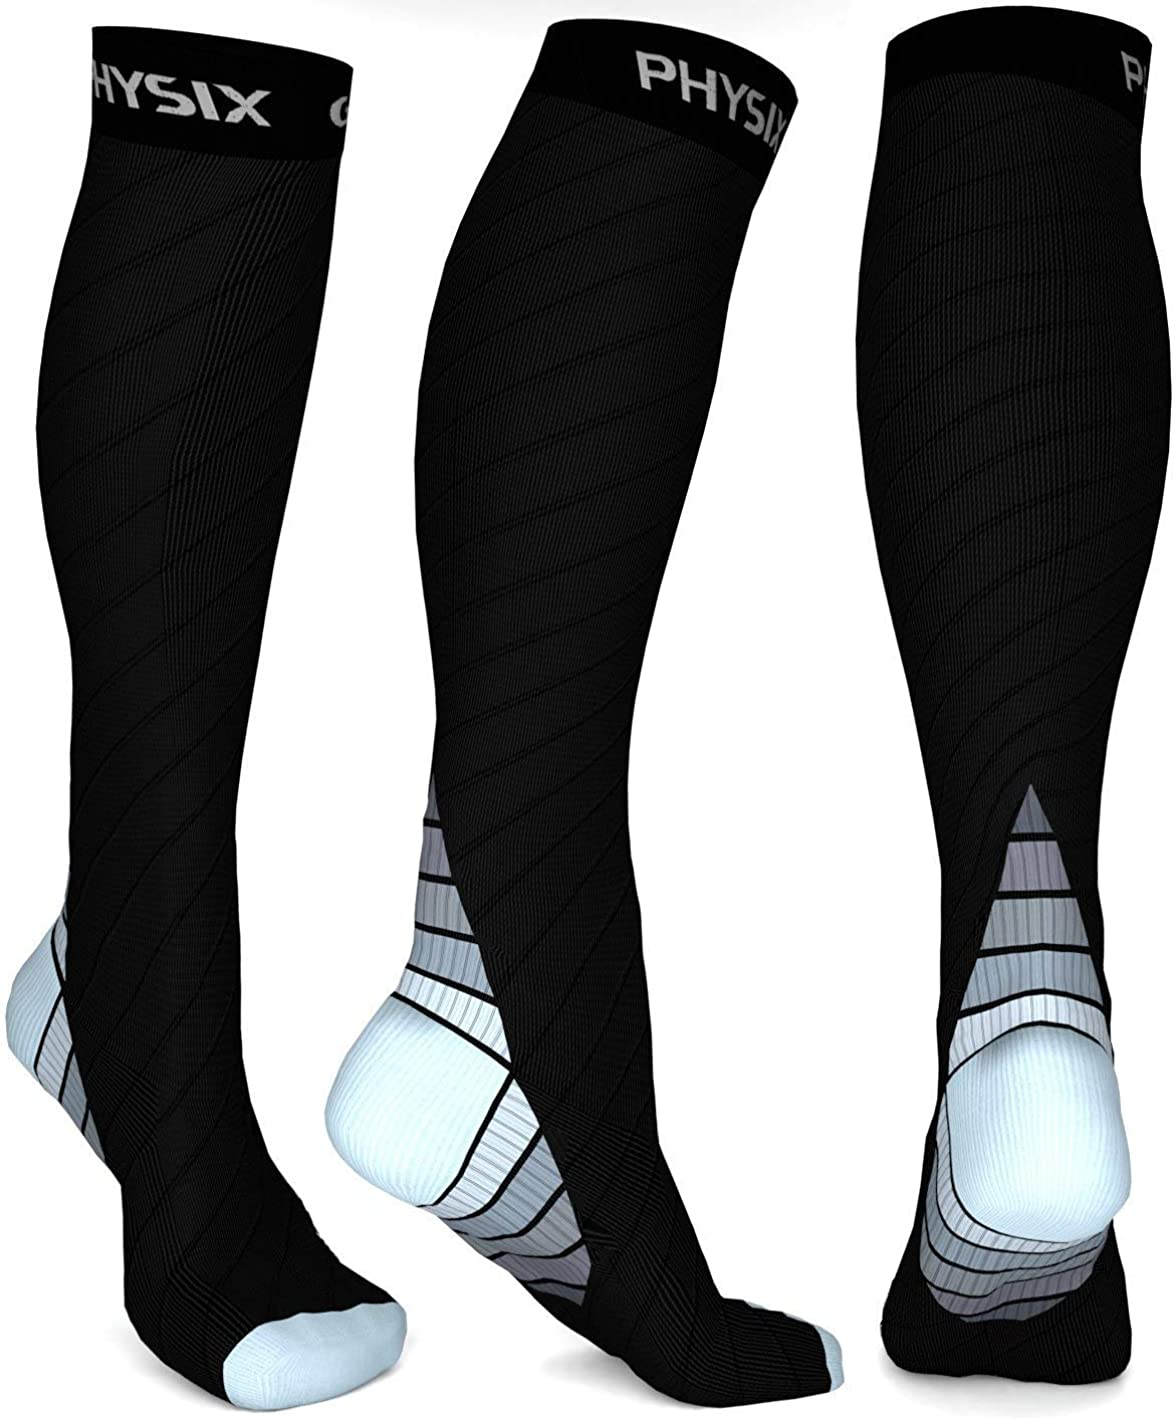 Physix Gear Sport Compression Socks for Men & Women 20-30 mmHg - Athletic Fit: Clothing